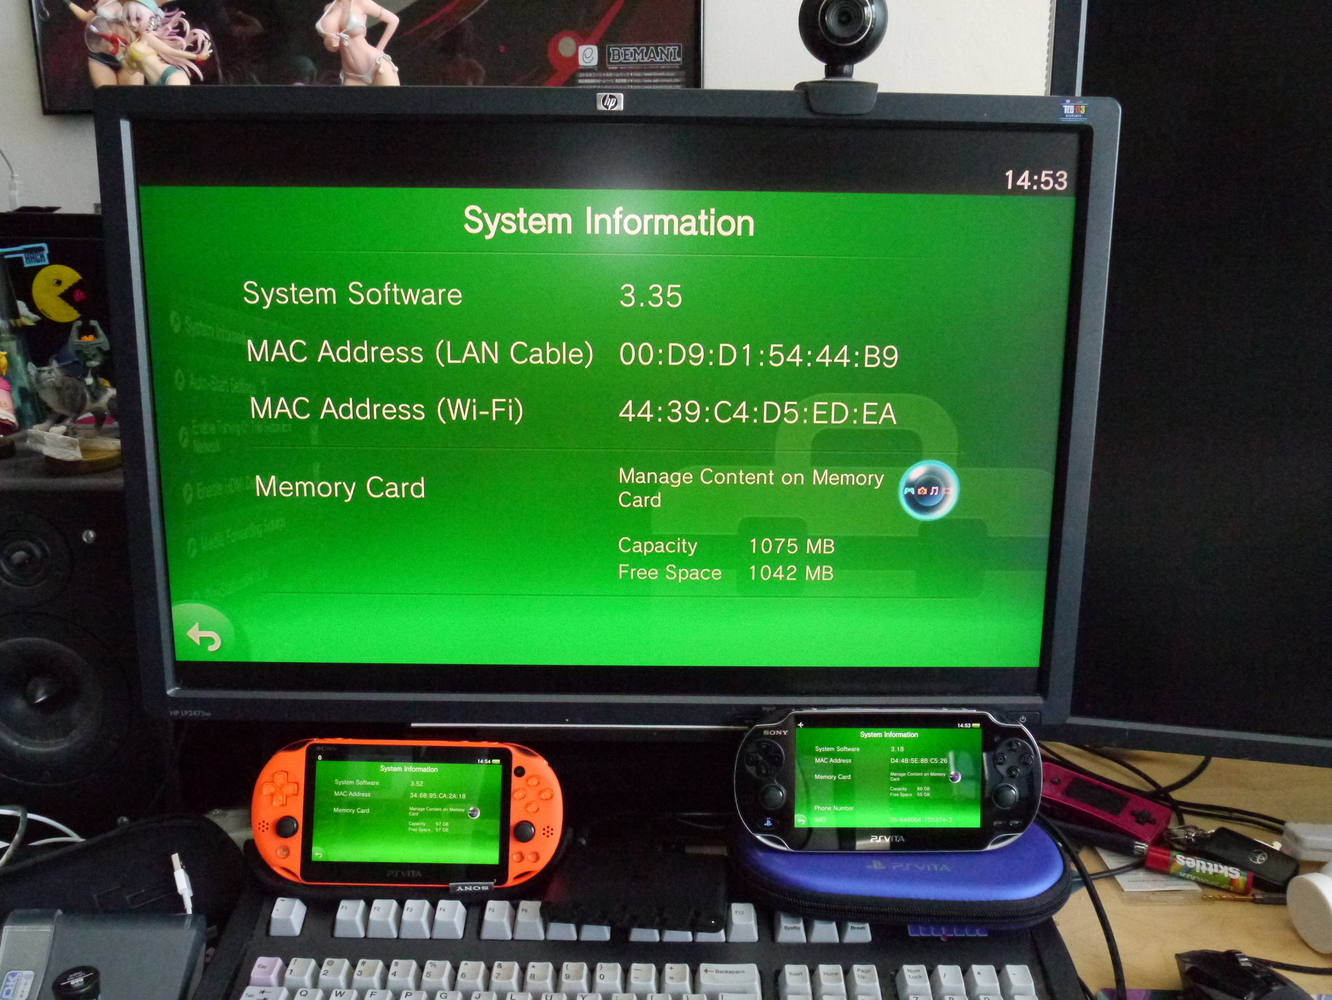 Vita 1000, 2000, and TV on stock firmwares 3.18, 3.52, and 3.35 respectively